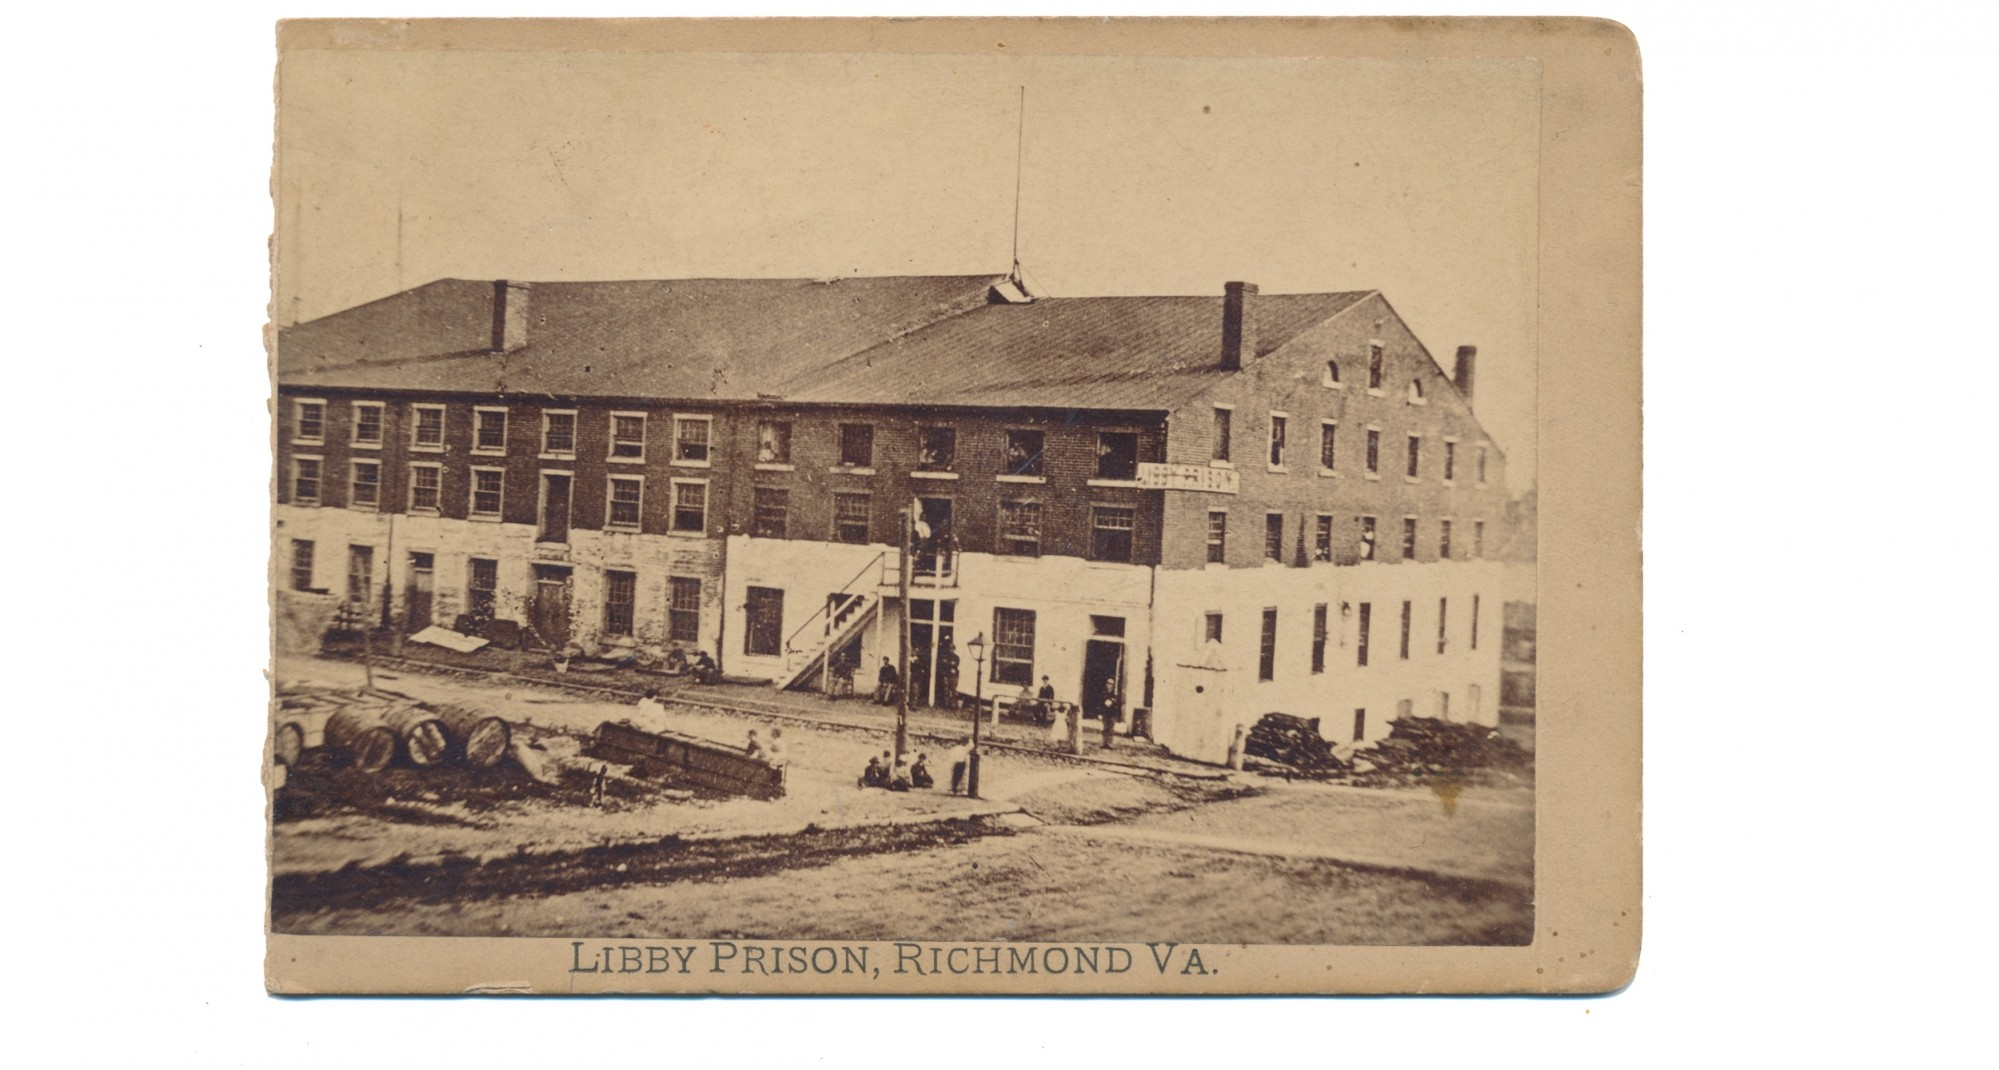 LIBBY PRISON CABINET CARD